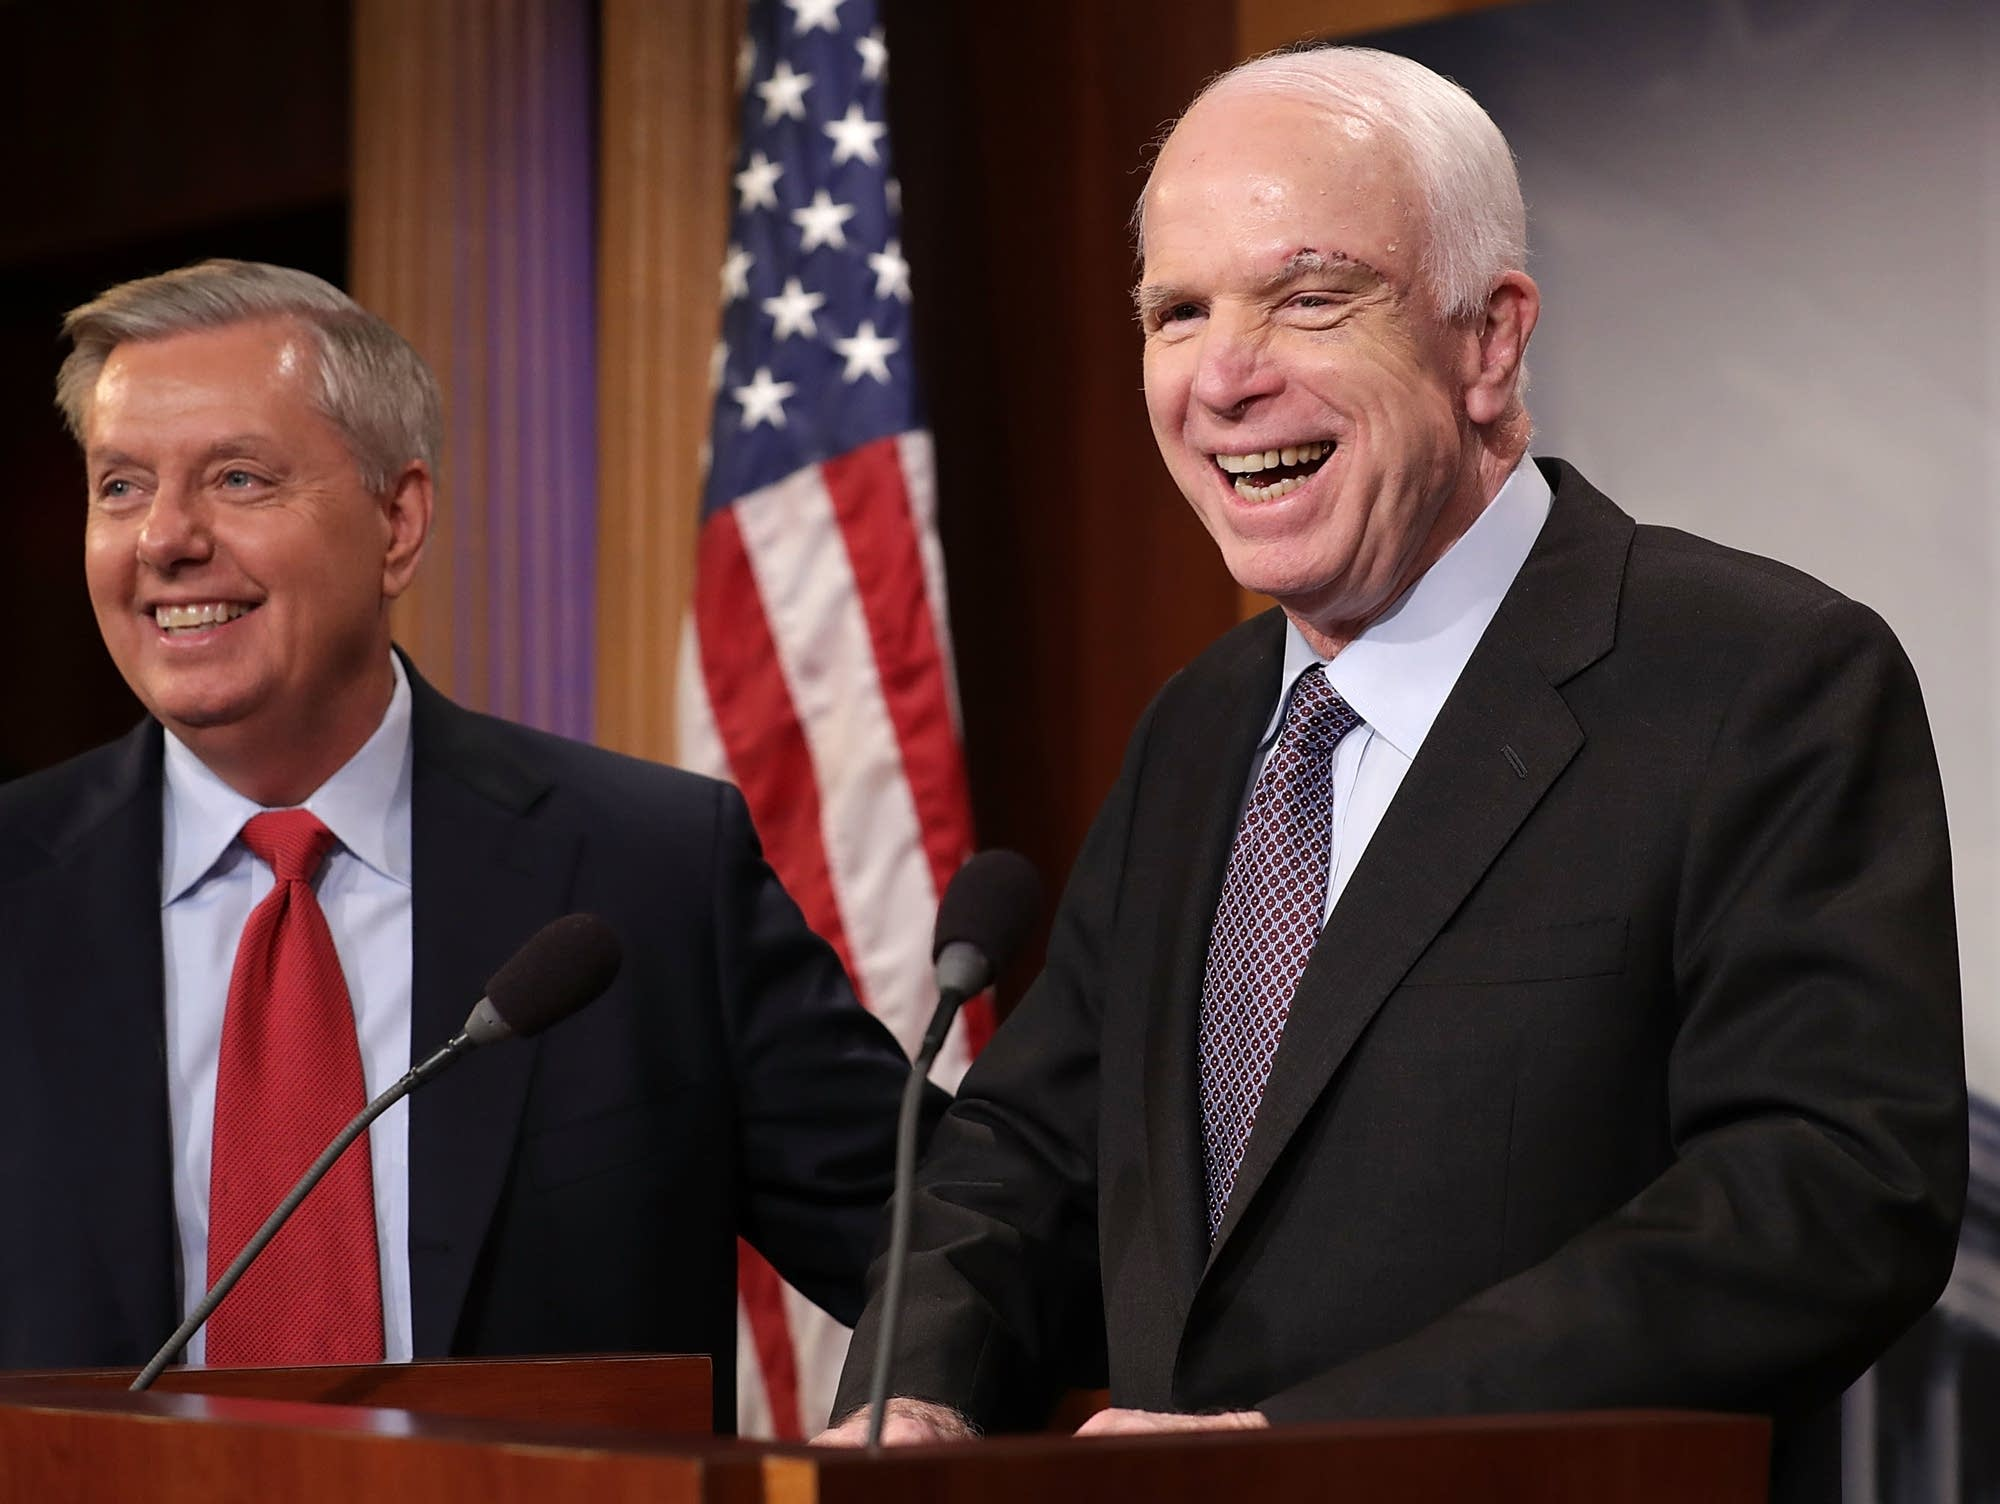 John McCain Right And Sen Lindsey Graham Hold A News Conference On Health Care Legislation At The US Capitol July 27 2017 In Washington